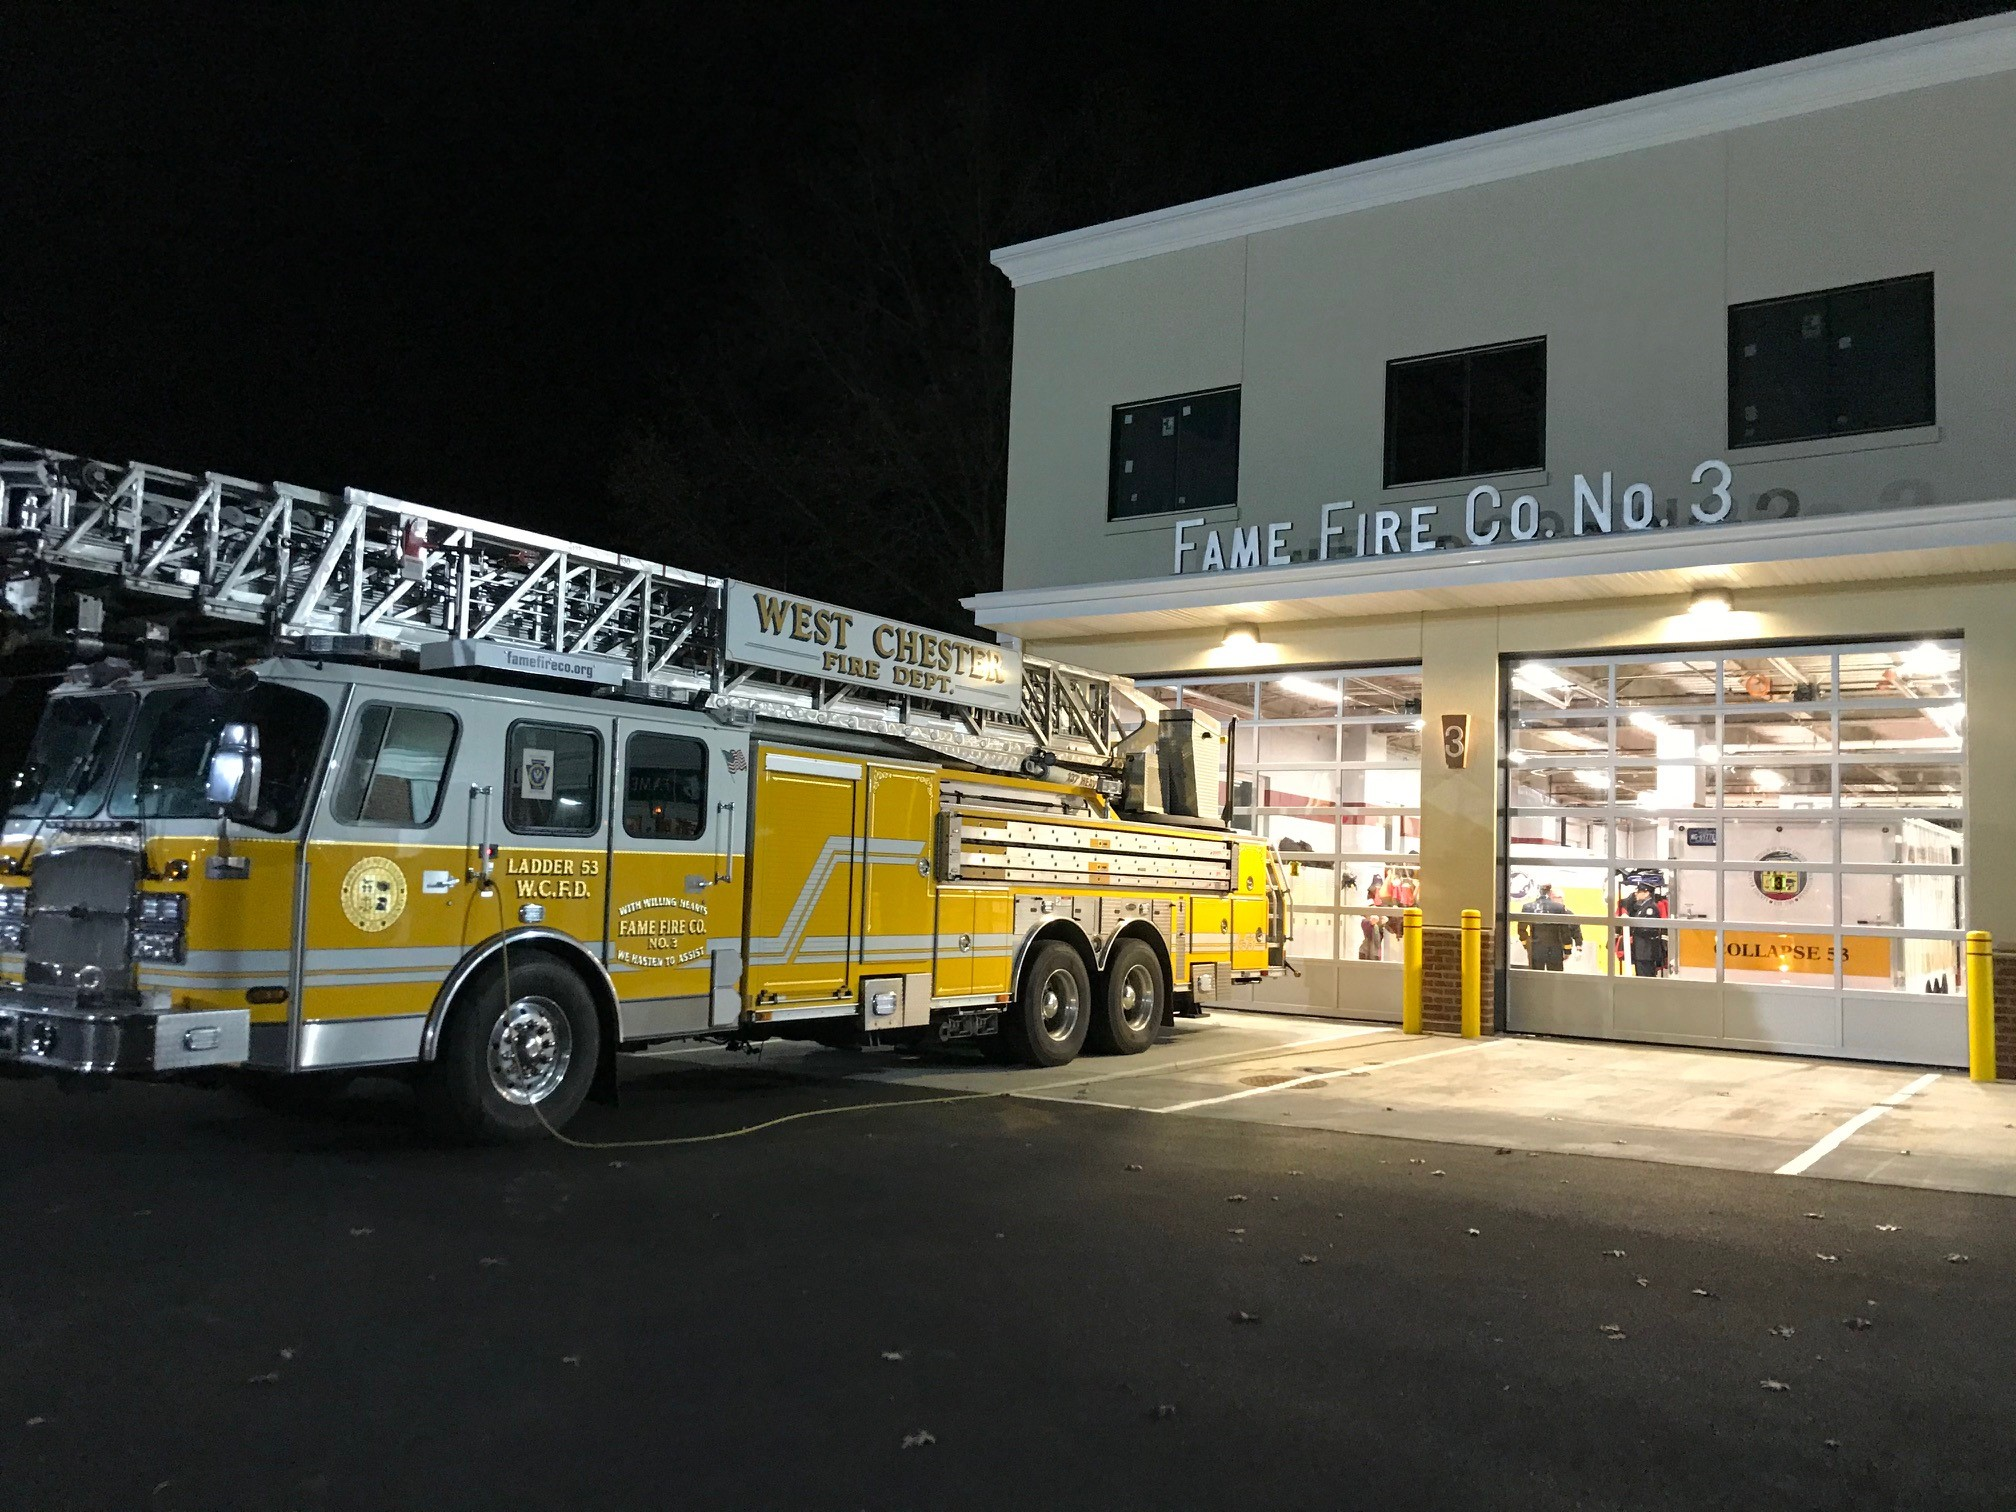 Energy Transfer Awards West Chester's Fame Fire Company $25,000 Grant for Station Enhancements